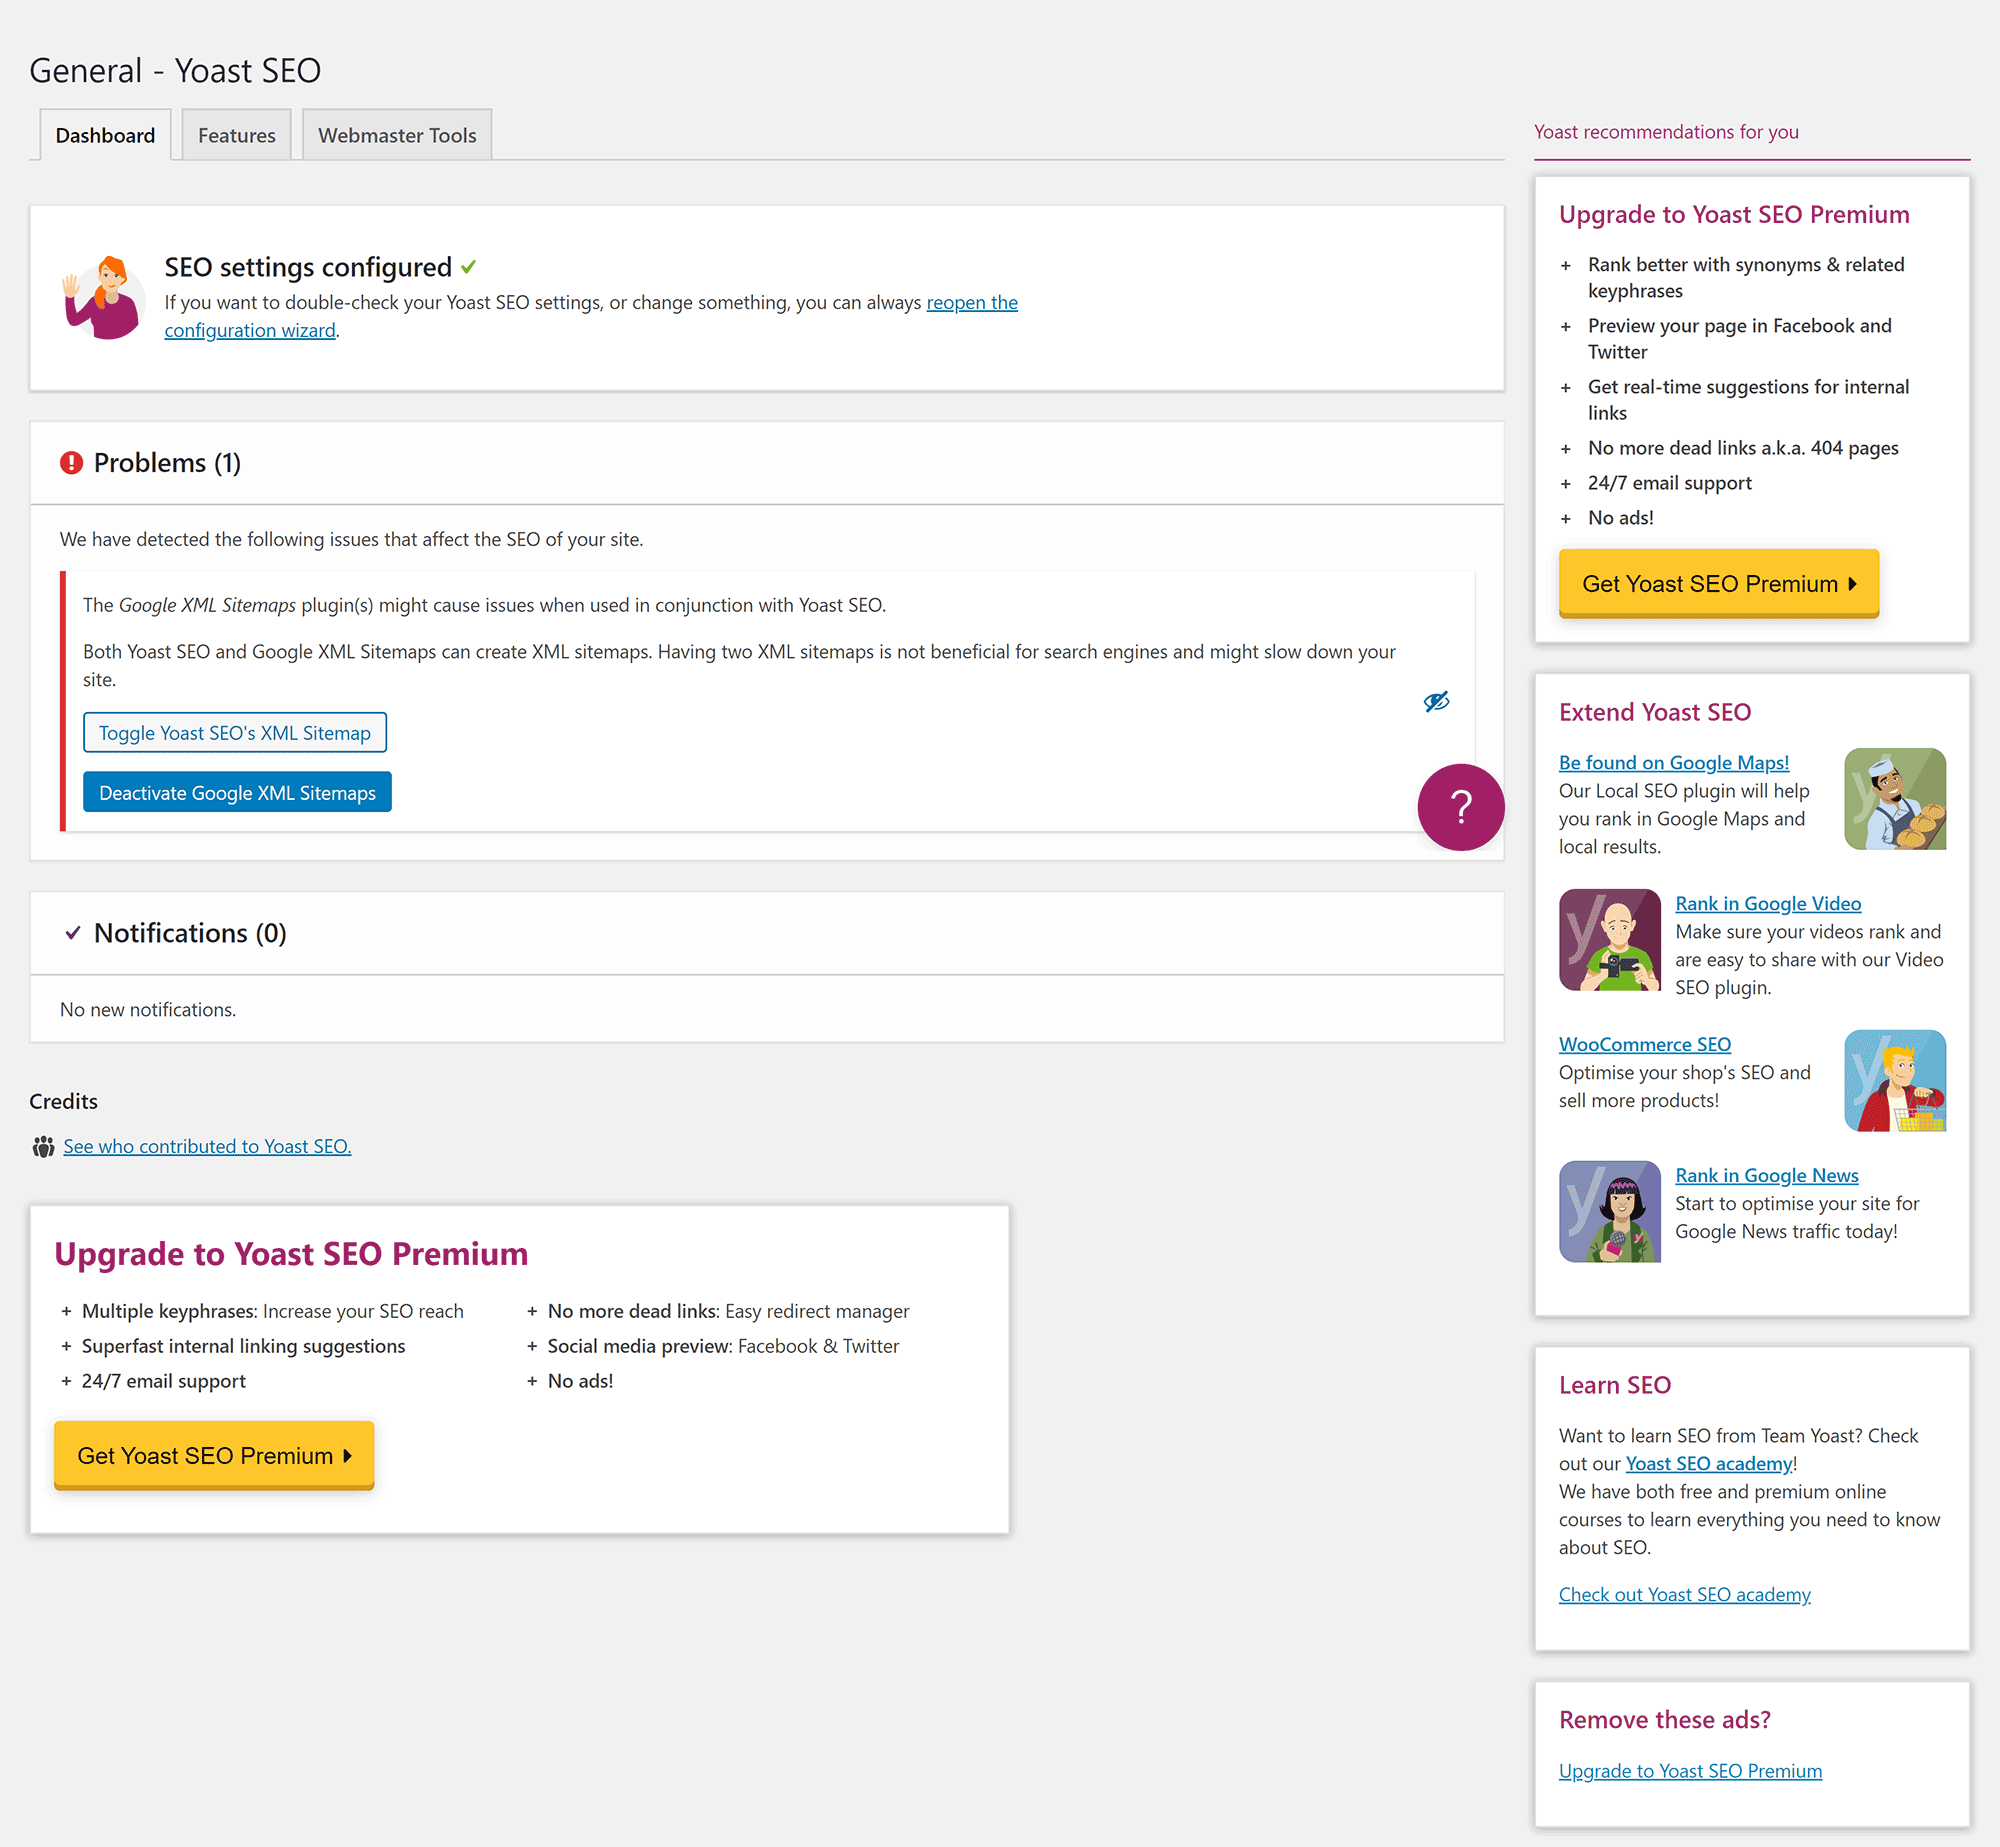 The Yoast SEO Dashboard